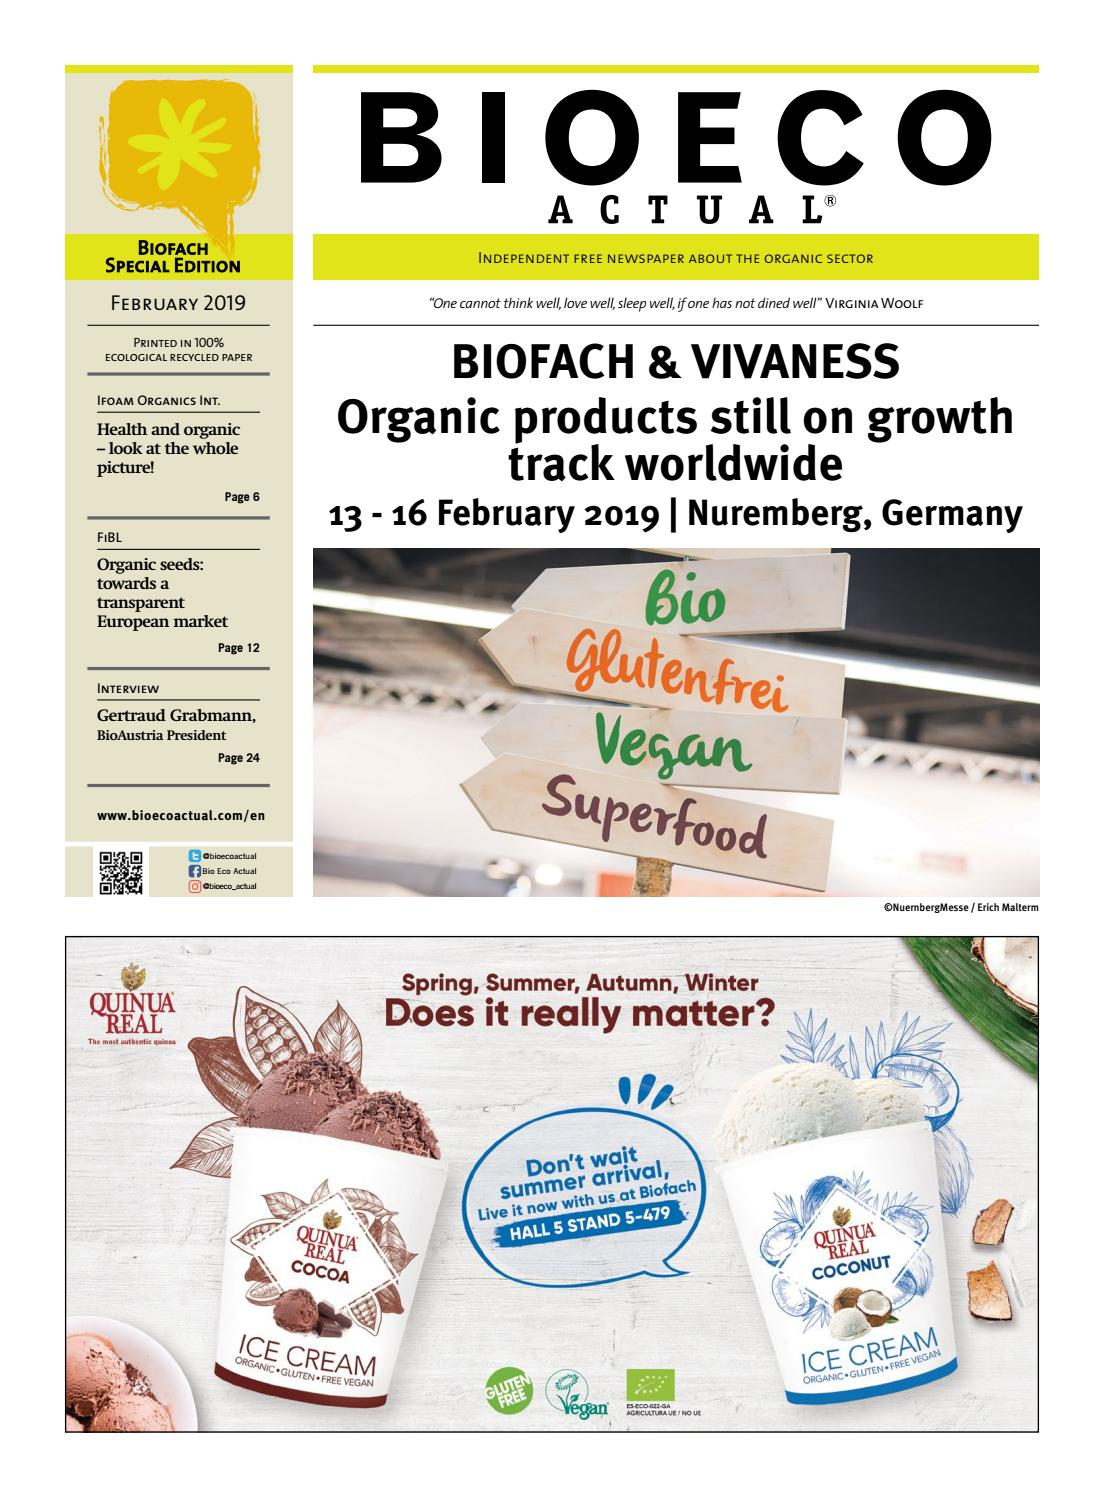 Bio Eco Actual - BIOFACH & VIVANESS 2019 Special Edition by